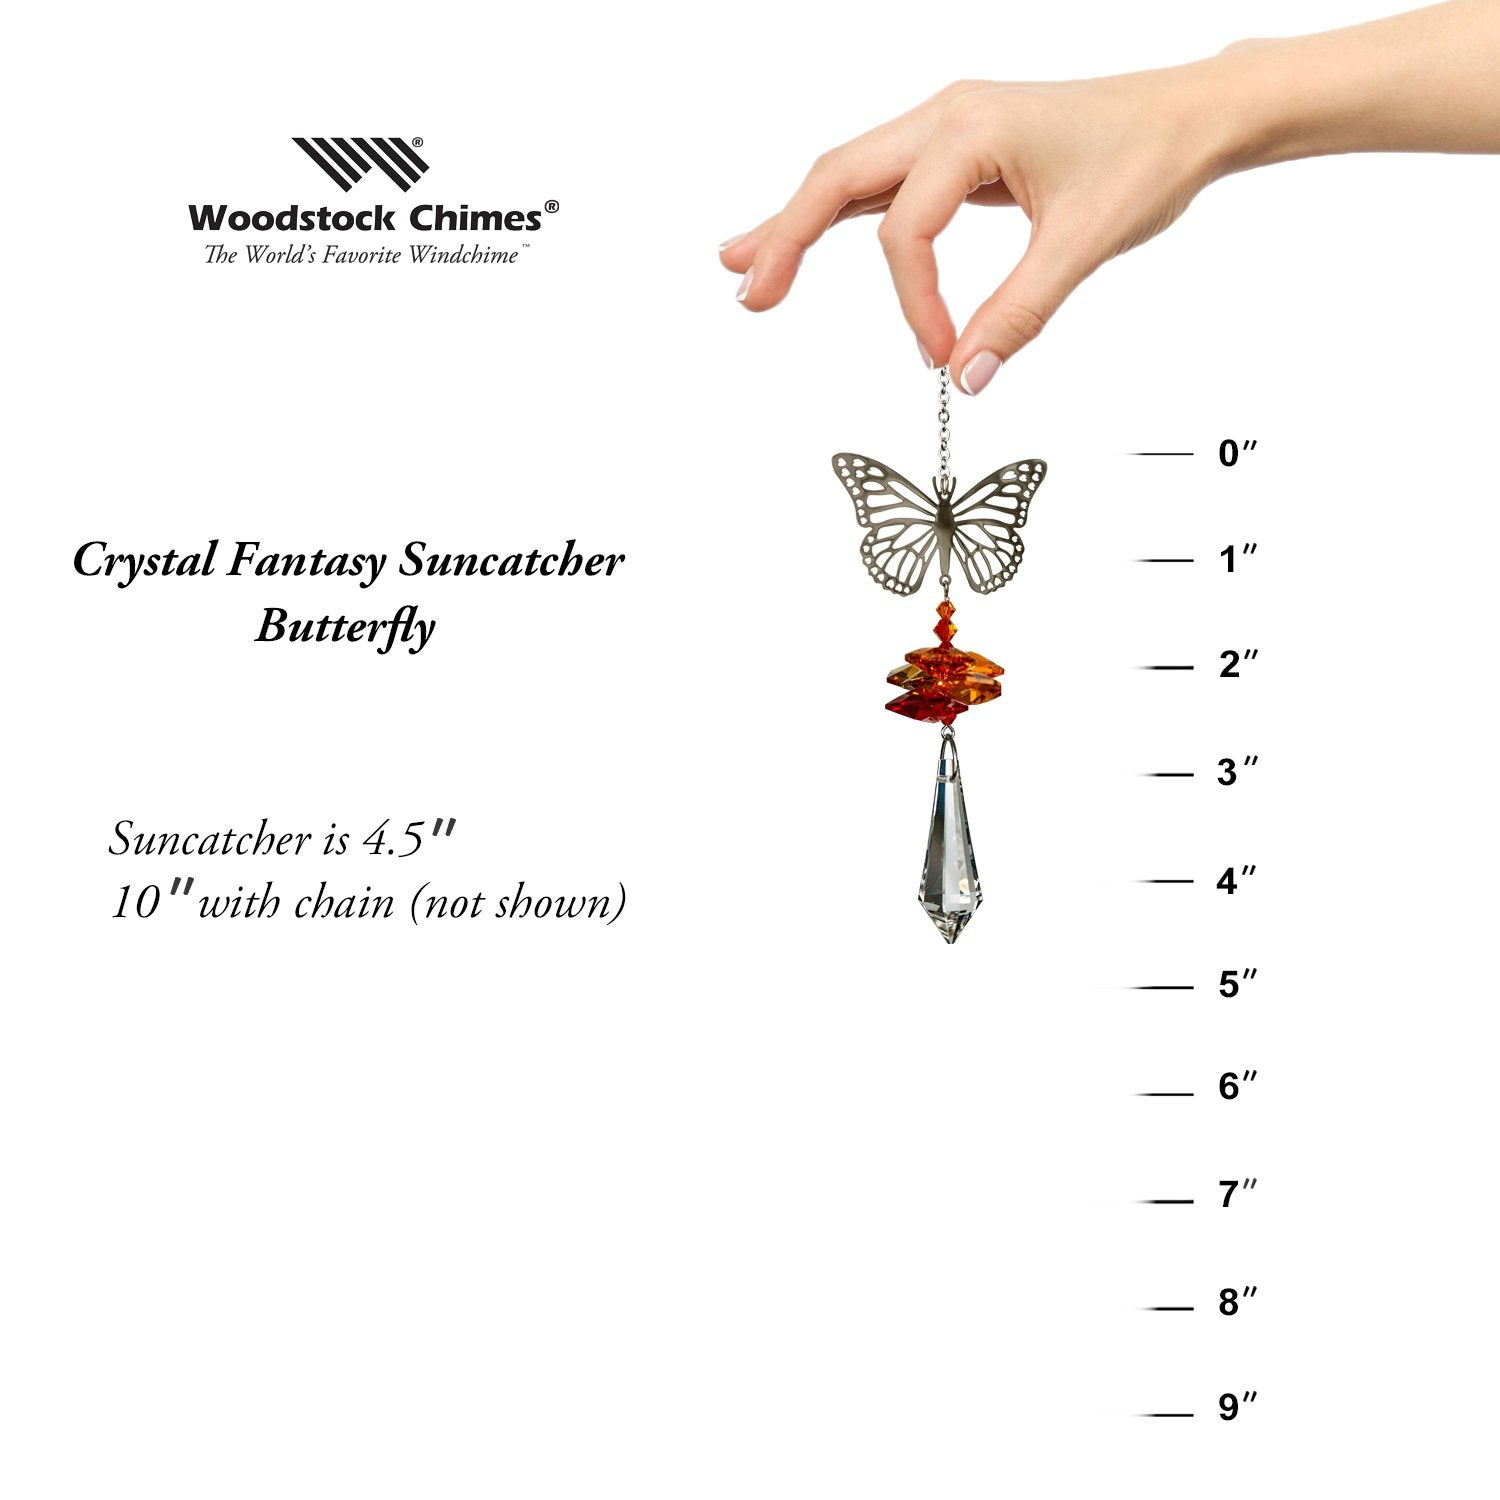 Crystal Fantasy Suncatcher - Butterfly proportion image